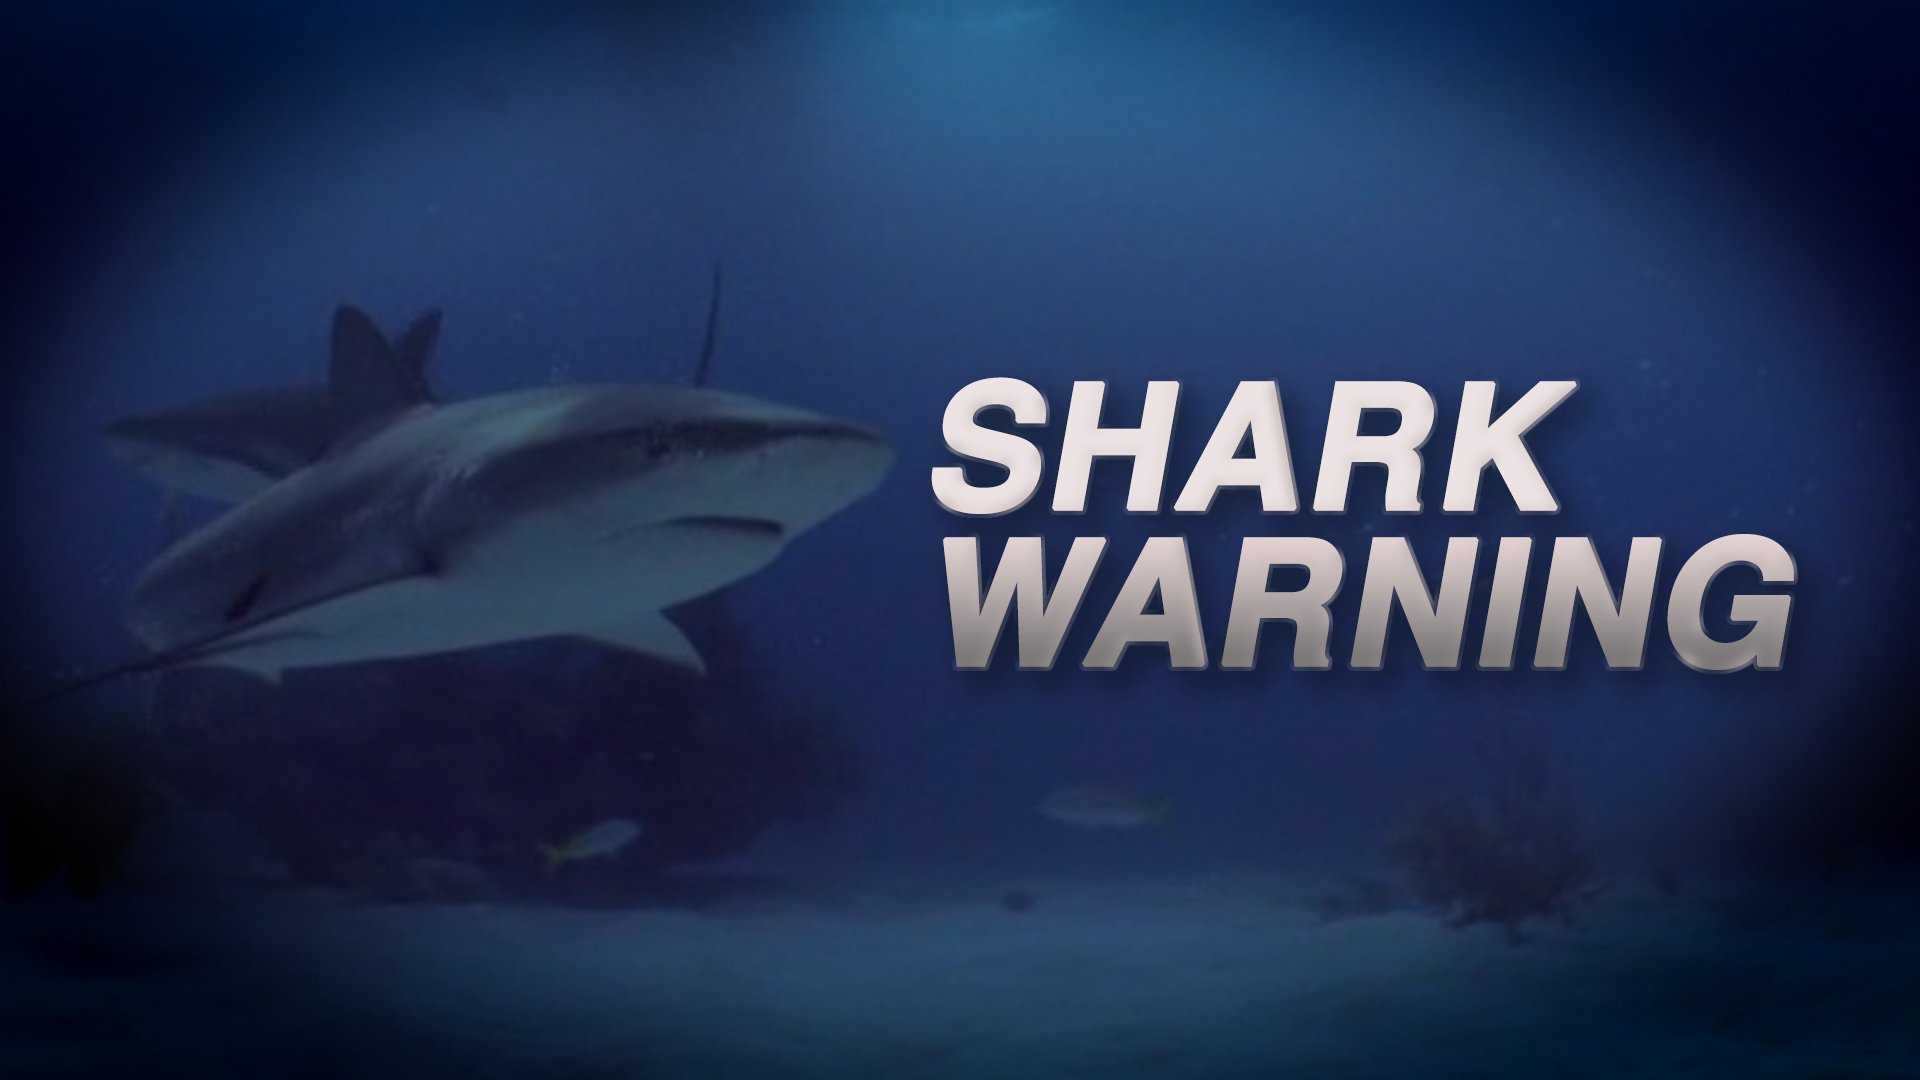 An update on the Lake Macquarie shark attack which occurred late yesterday: the man was swimming at Yarrawonga Park about 6.30pm when he was bitten on the